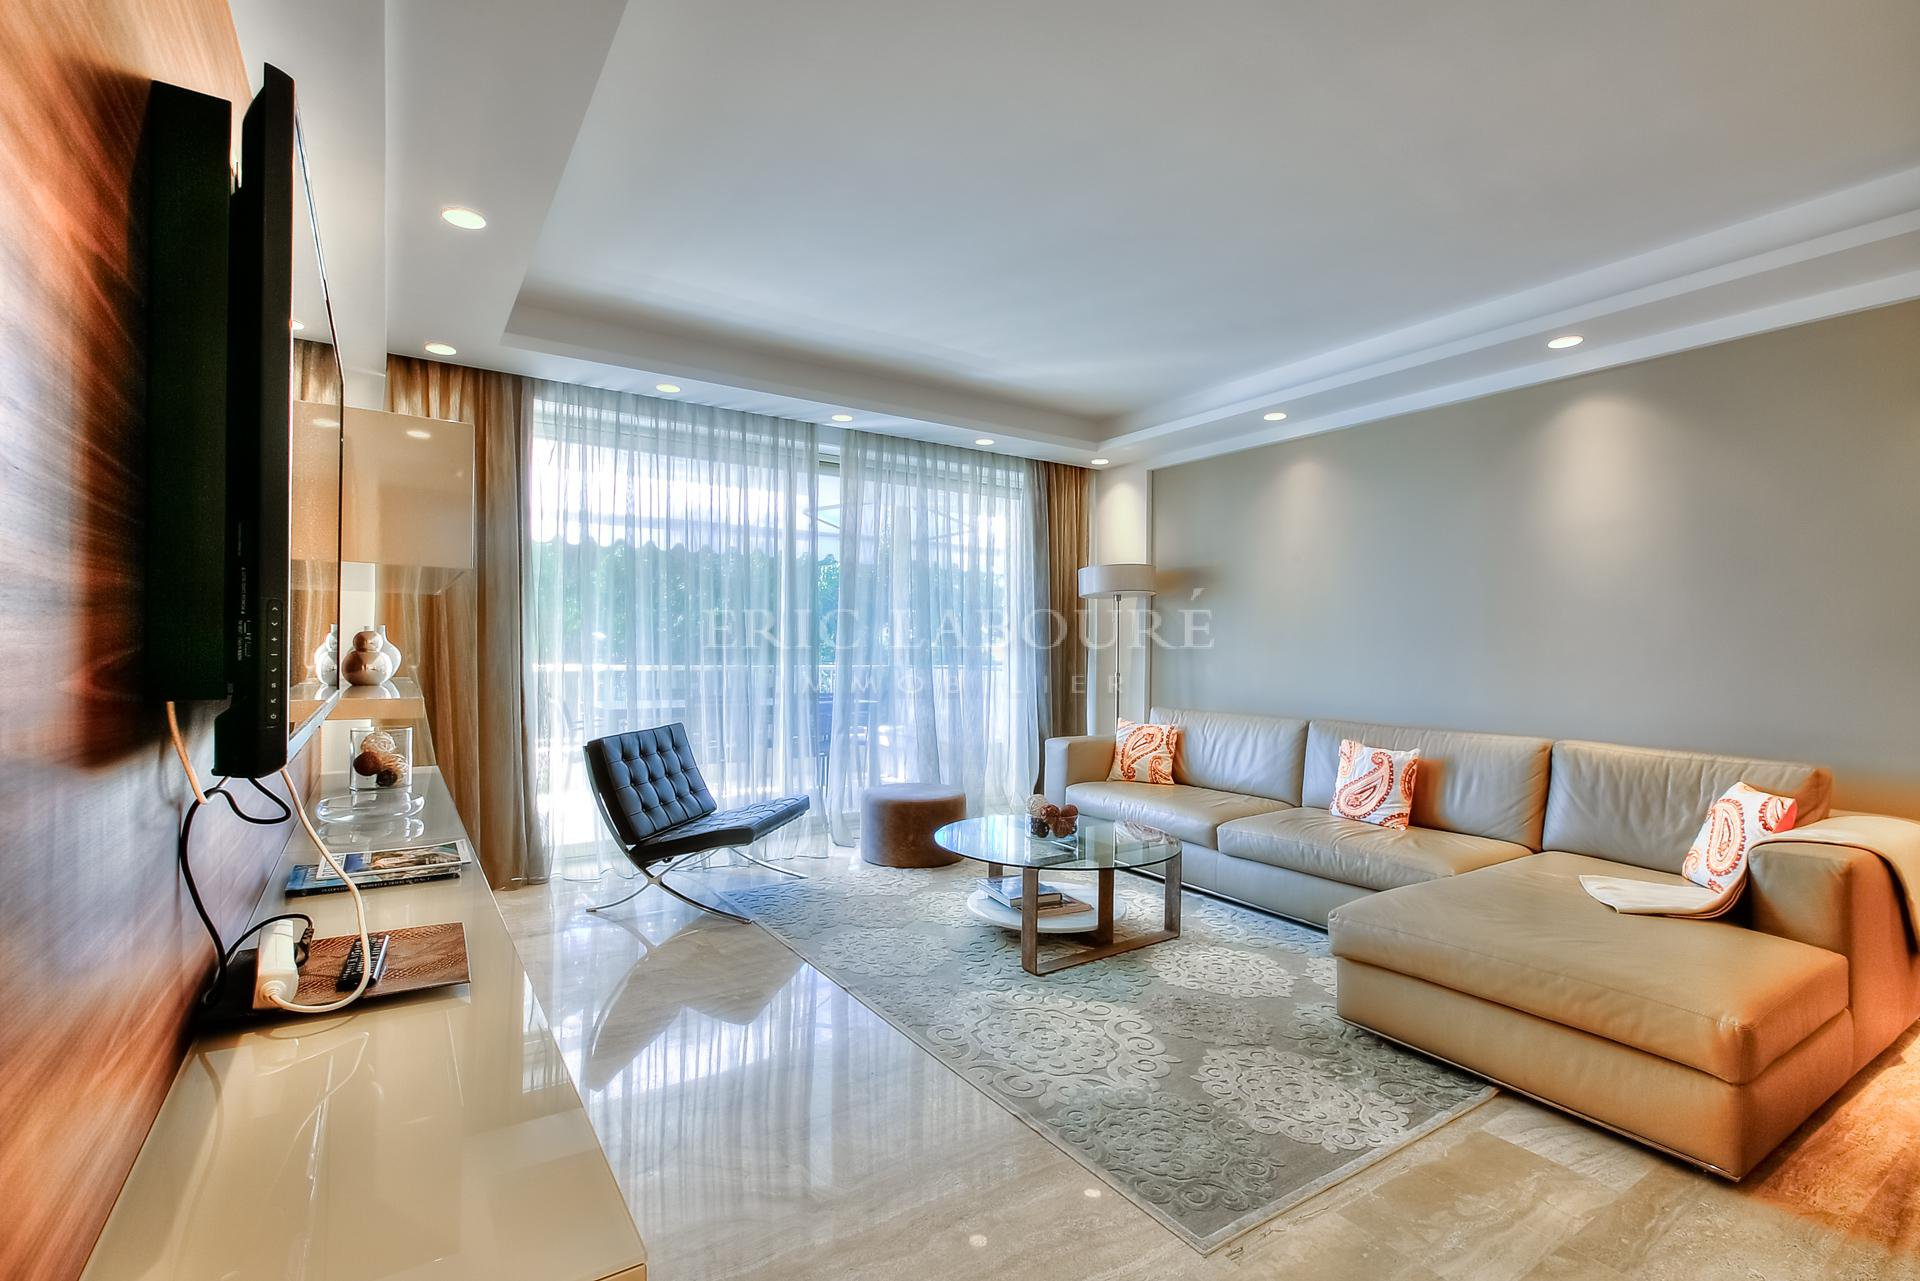 Living room opening on a large terrace